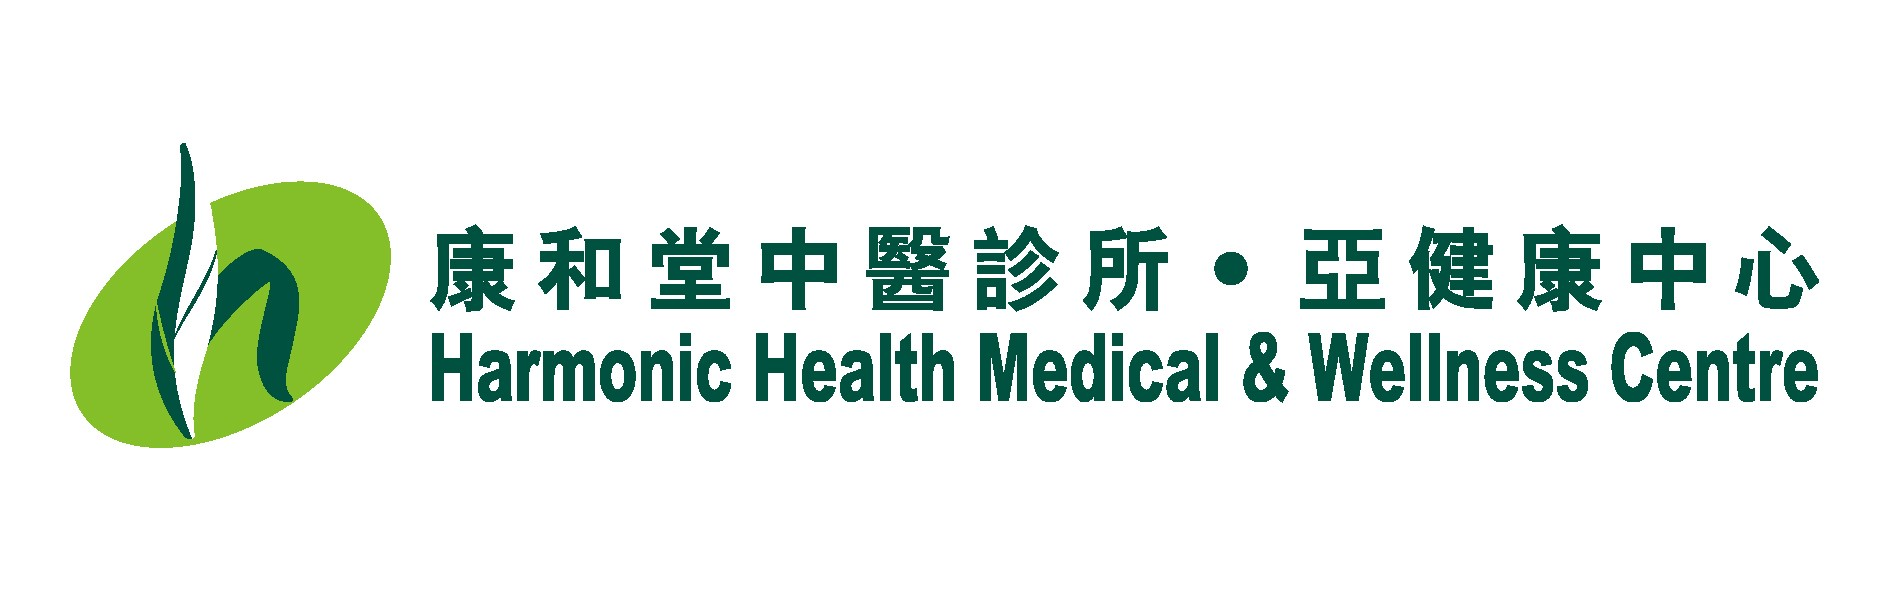 Harmonic Health Pharmaceutical Co Ltd 康和堂藥業有限公司